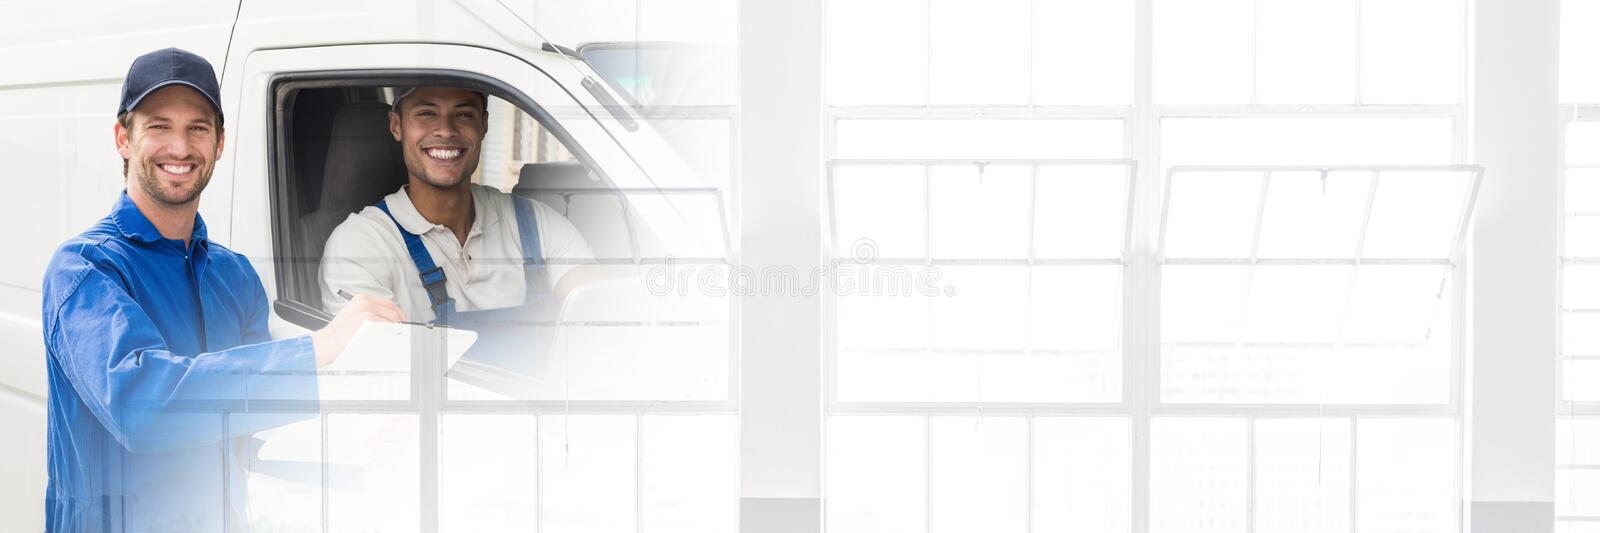 Delivery Couriers in van with transition effect royalty free stock images